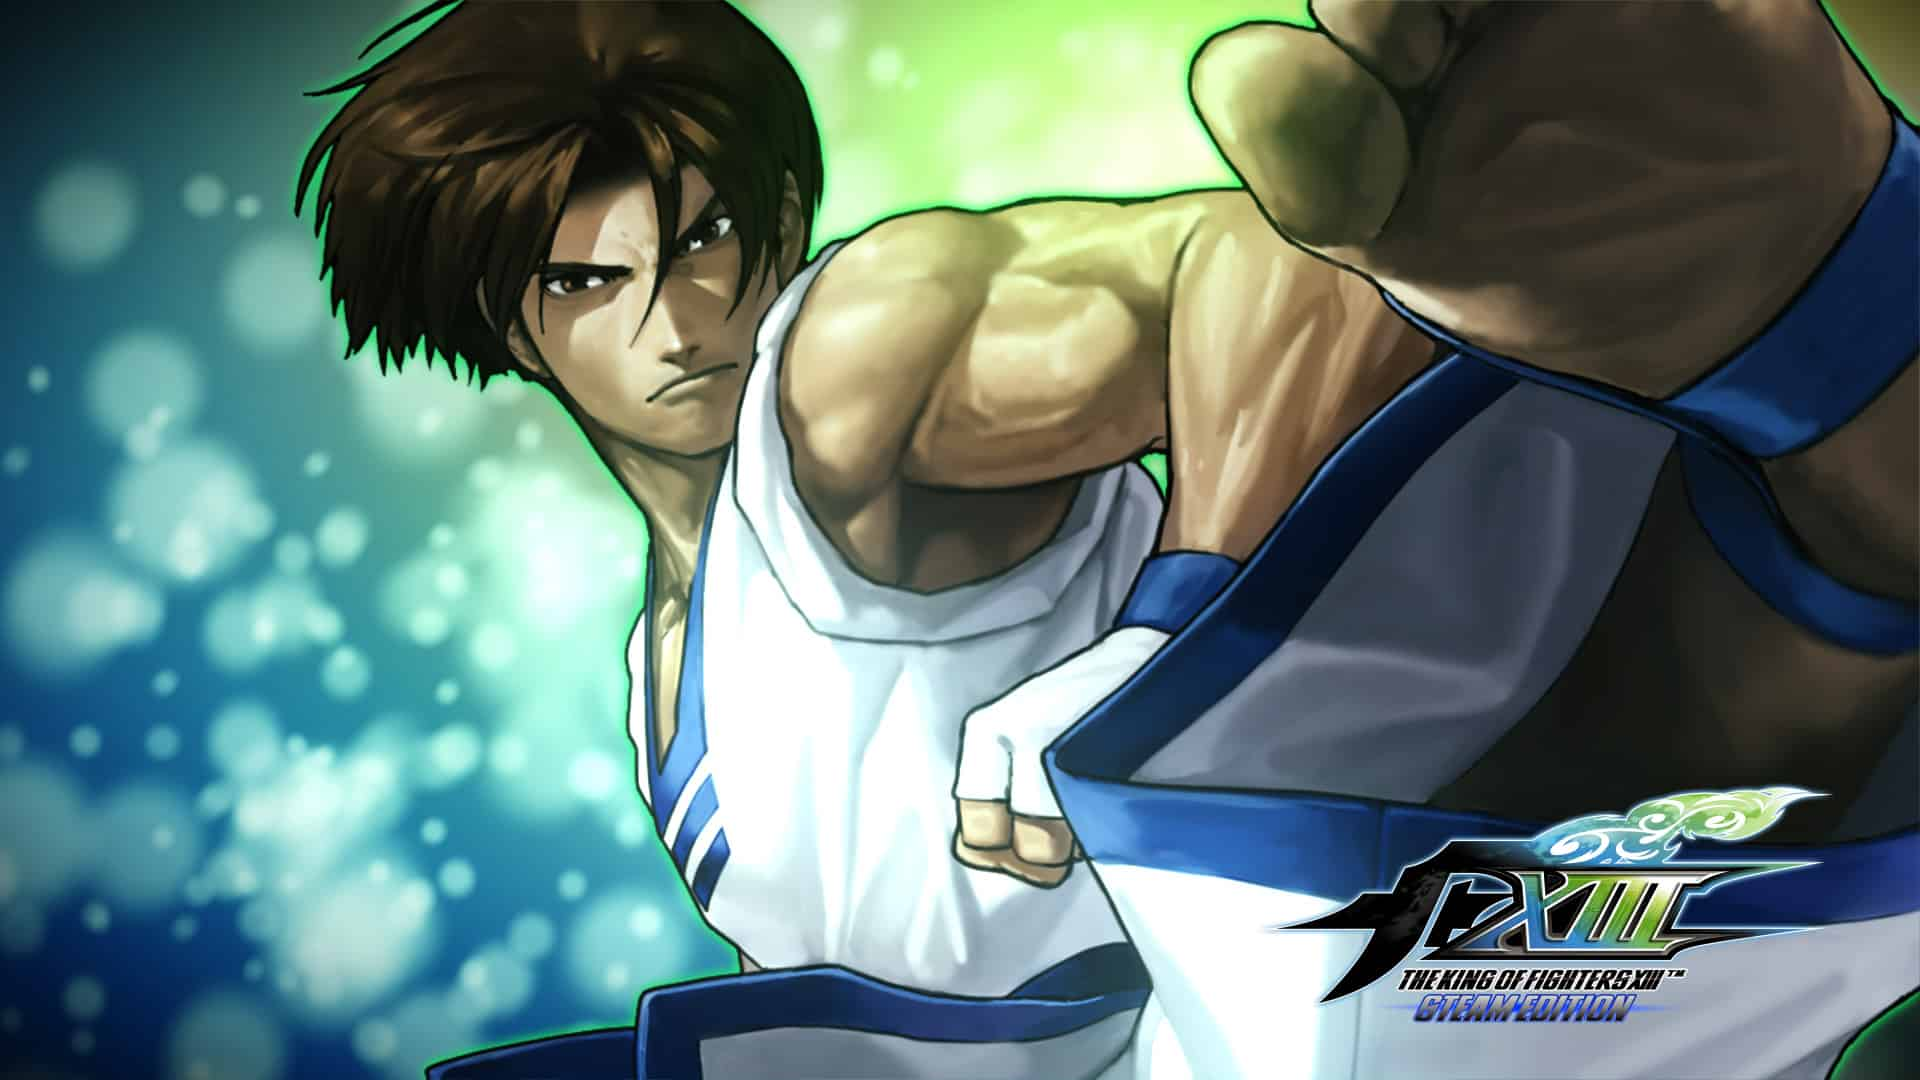 Best Fighting Games - The King of Fighters XIII